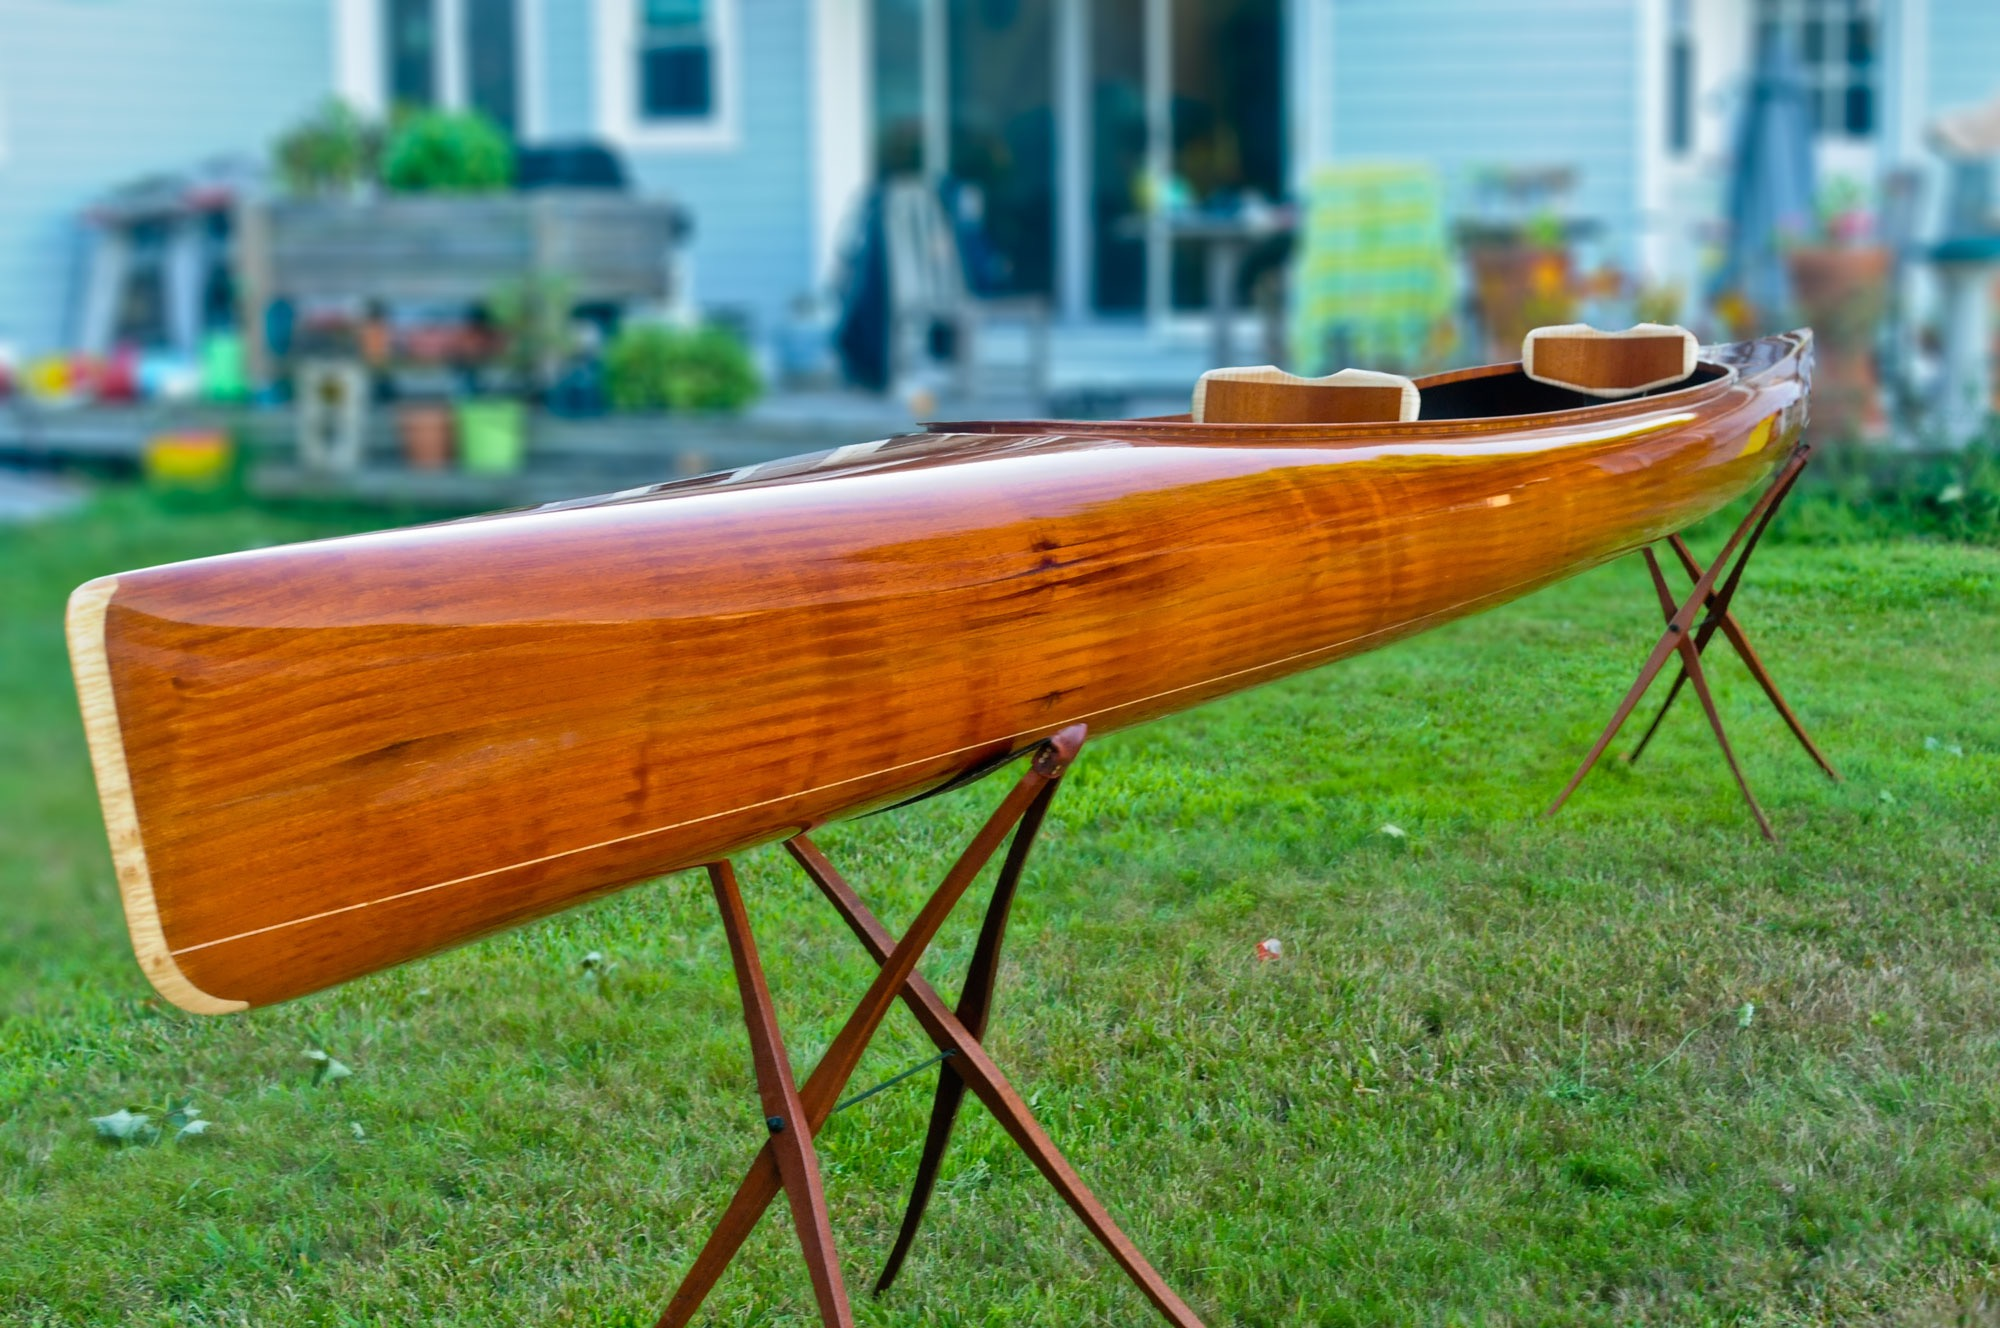 Mahogany Wood and Carbon Fiber Tandem Kayak